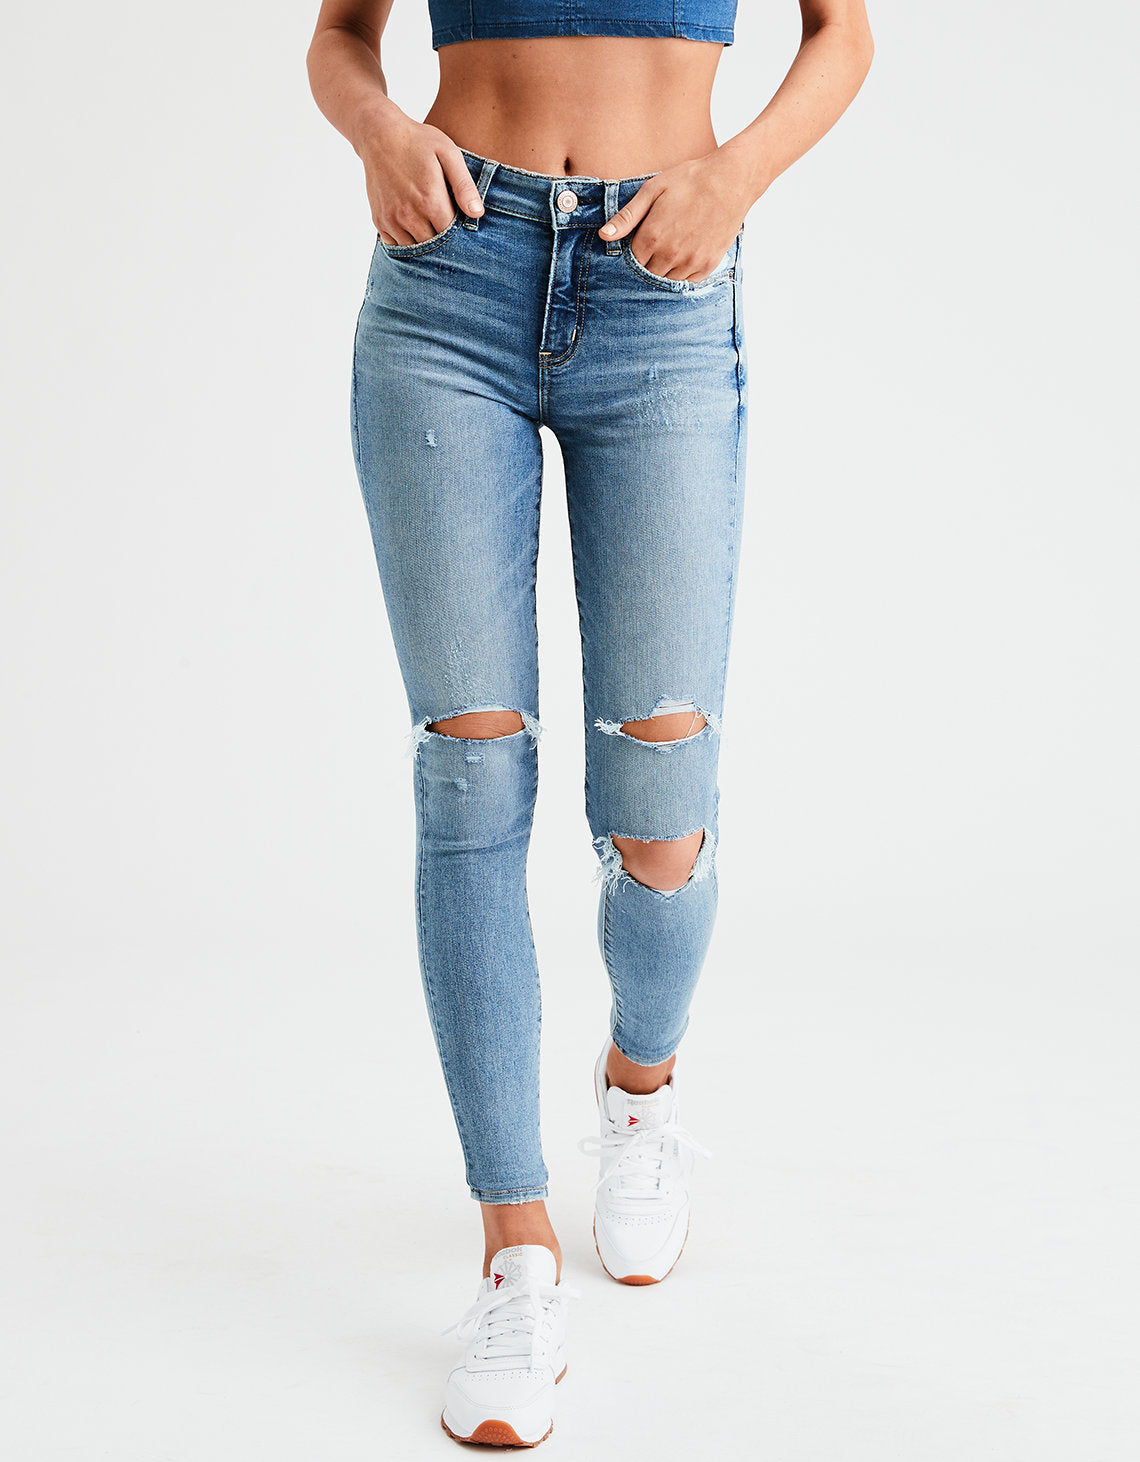 35ab0e7a American Eagle | AE Ne(X)t Level High-Waisted Jegging in Bright ...